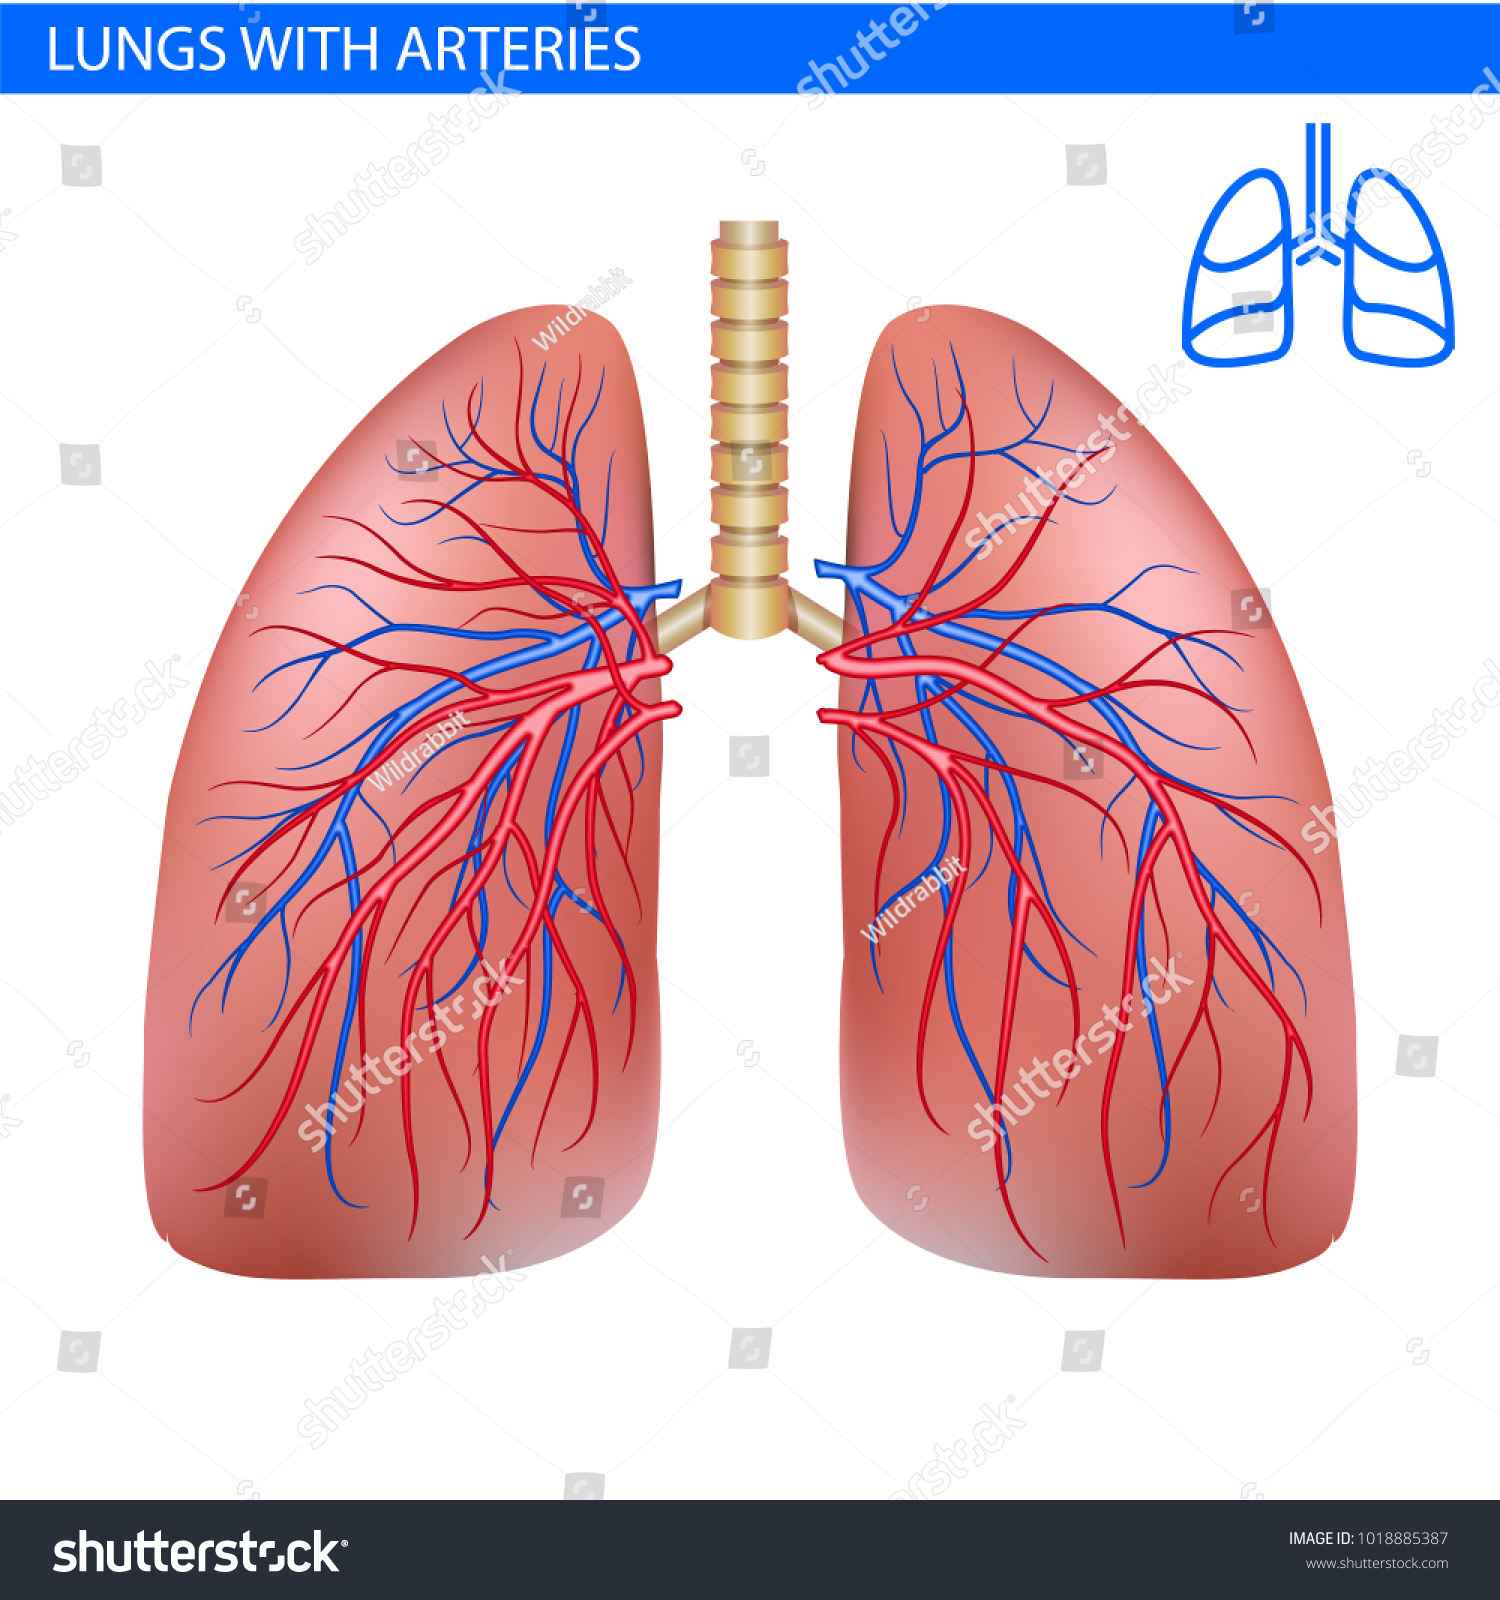 Human lungs anatomy artery circulatory system stock vector human lungs anatomy with artery circulatory system realistic illustration front view in detail lunge ccuart Images